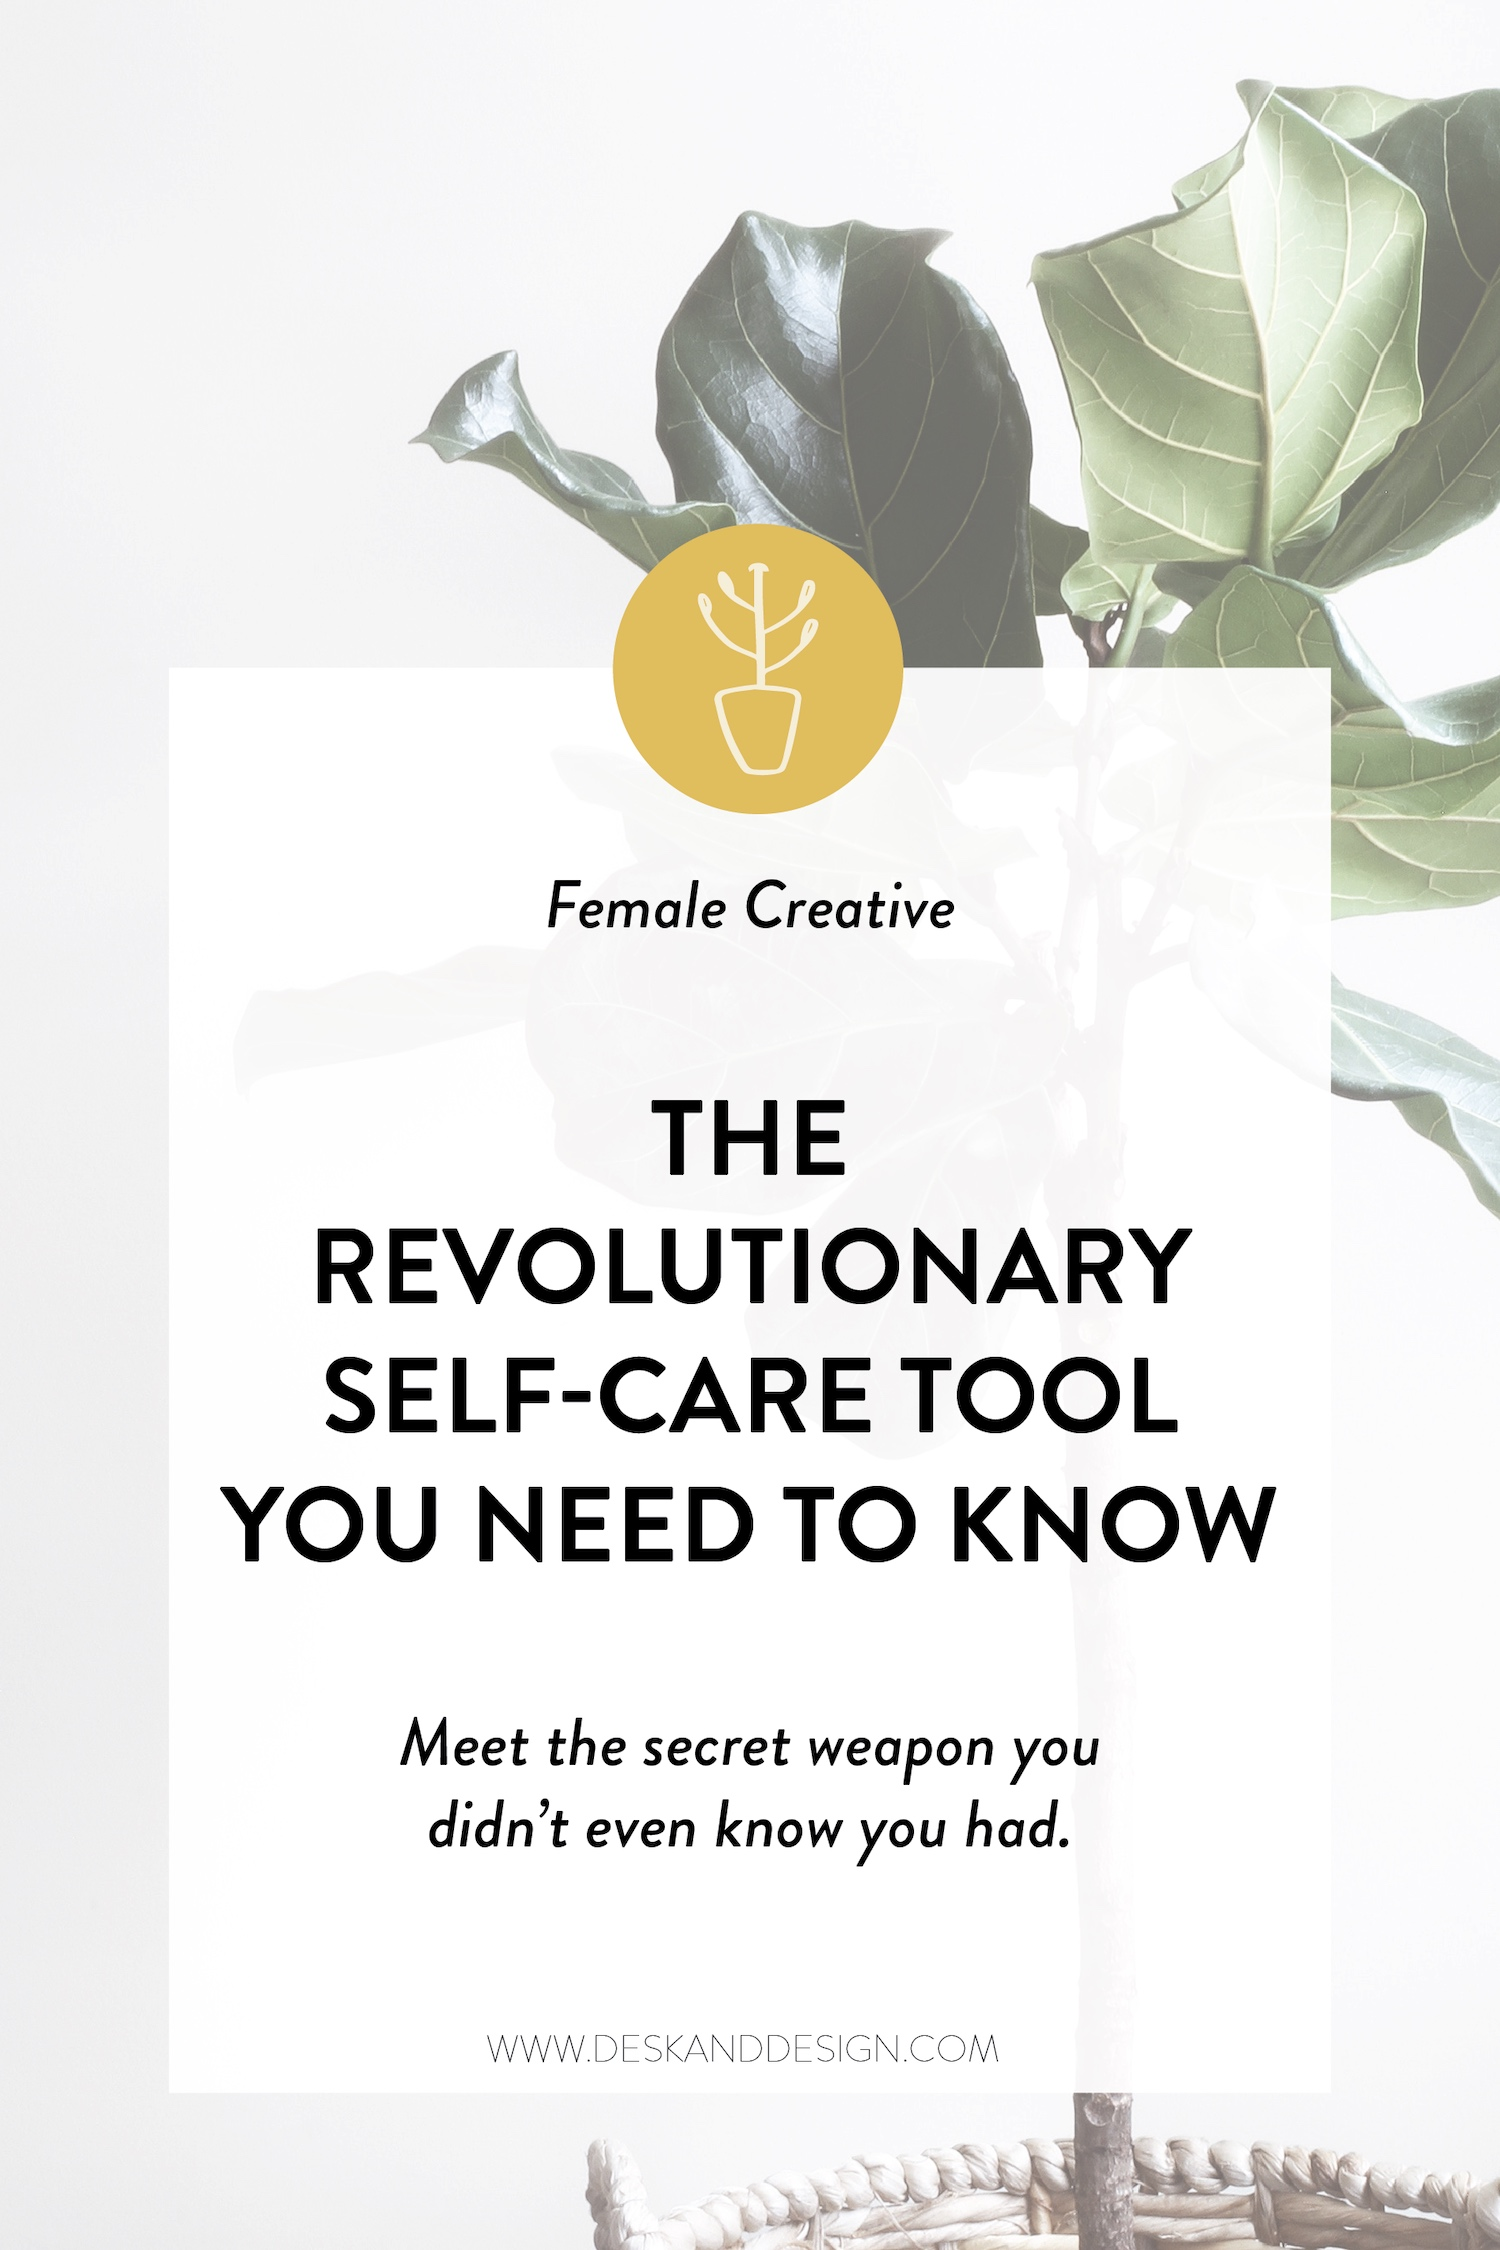 The Revolutionary Self-Care Tool You need to Know. Meet the secret weapon you didn't know you had.